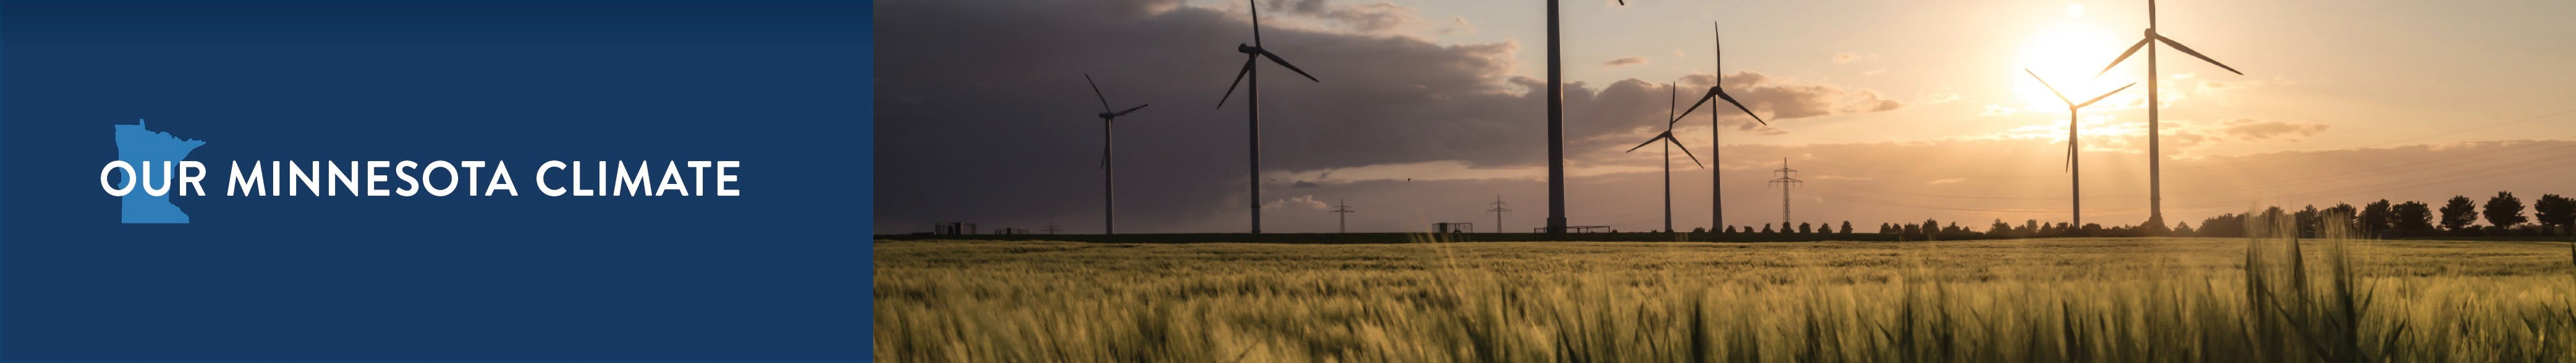 Our Minnesota Climate banner with a photo of wind turbines in a field with trees in the distance.